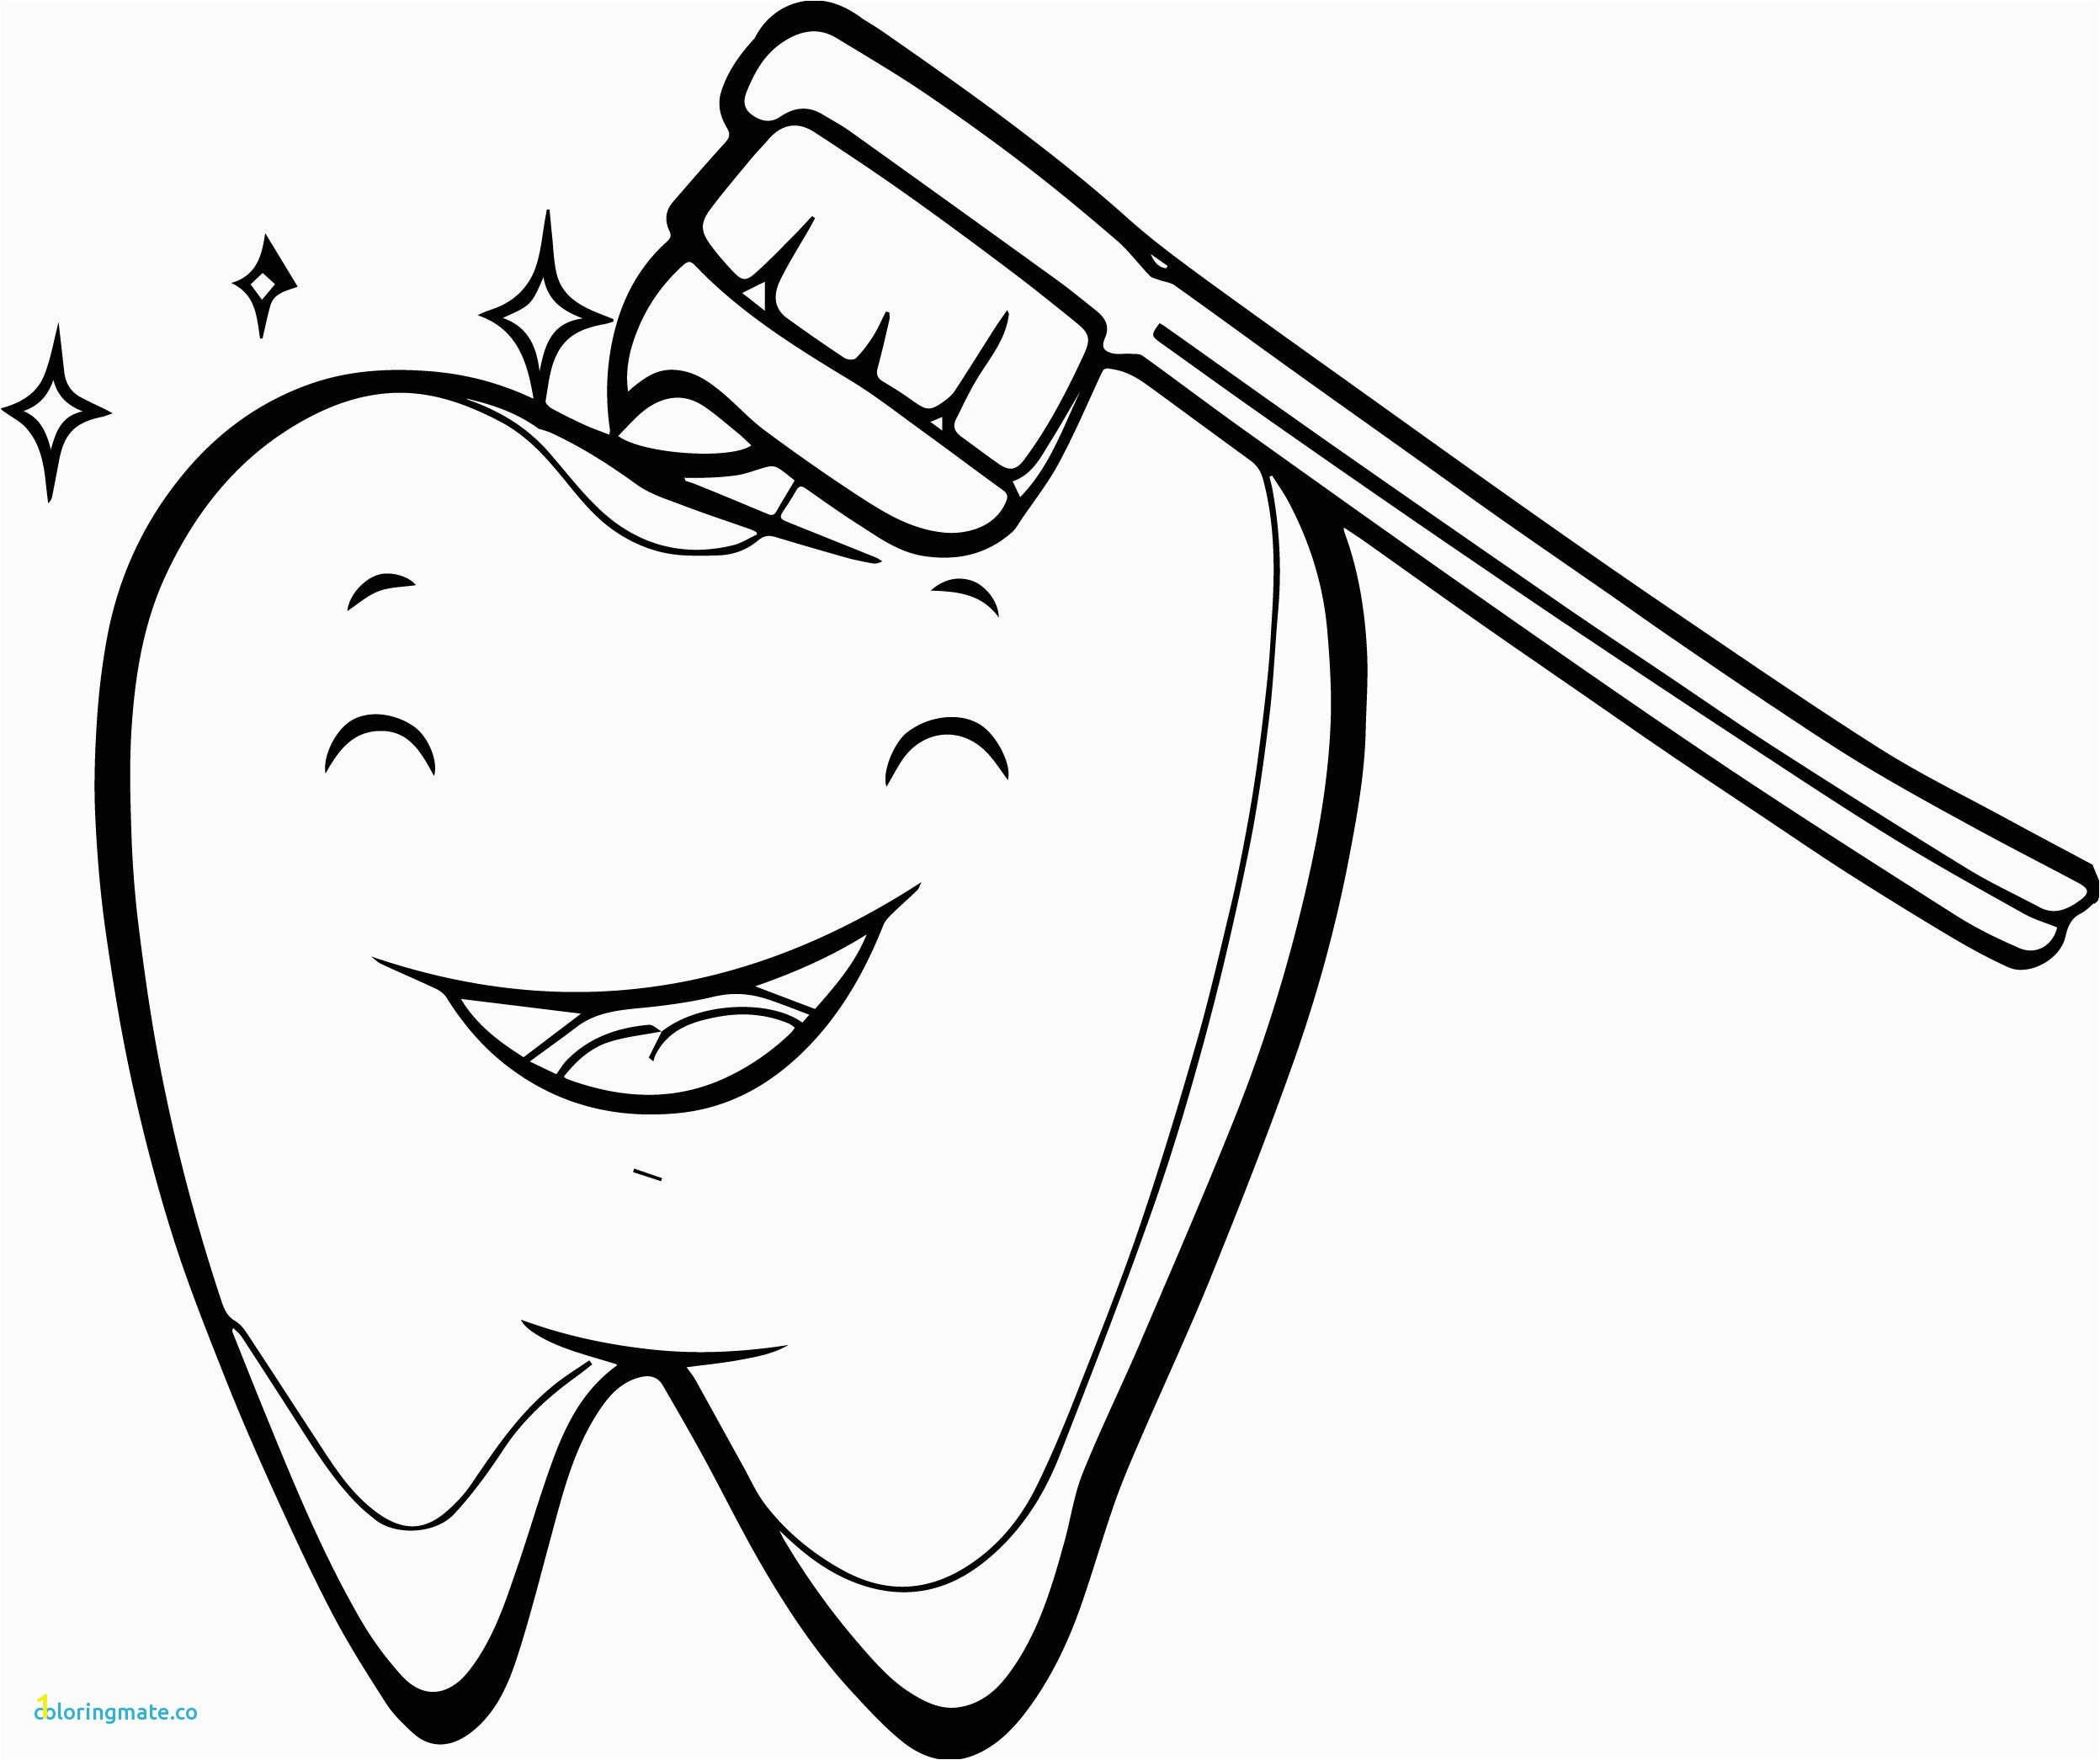 Reward Tooth And Toothbrush Coloring Pages Unbelievable The Best Page Preschool A To Print